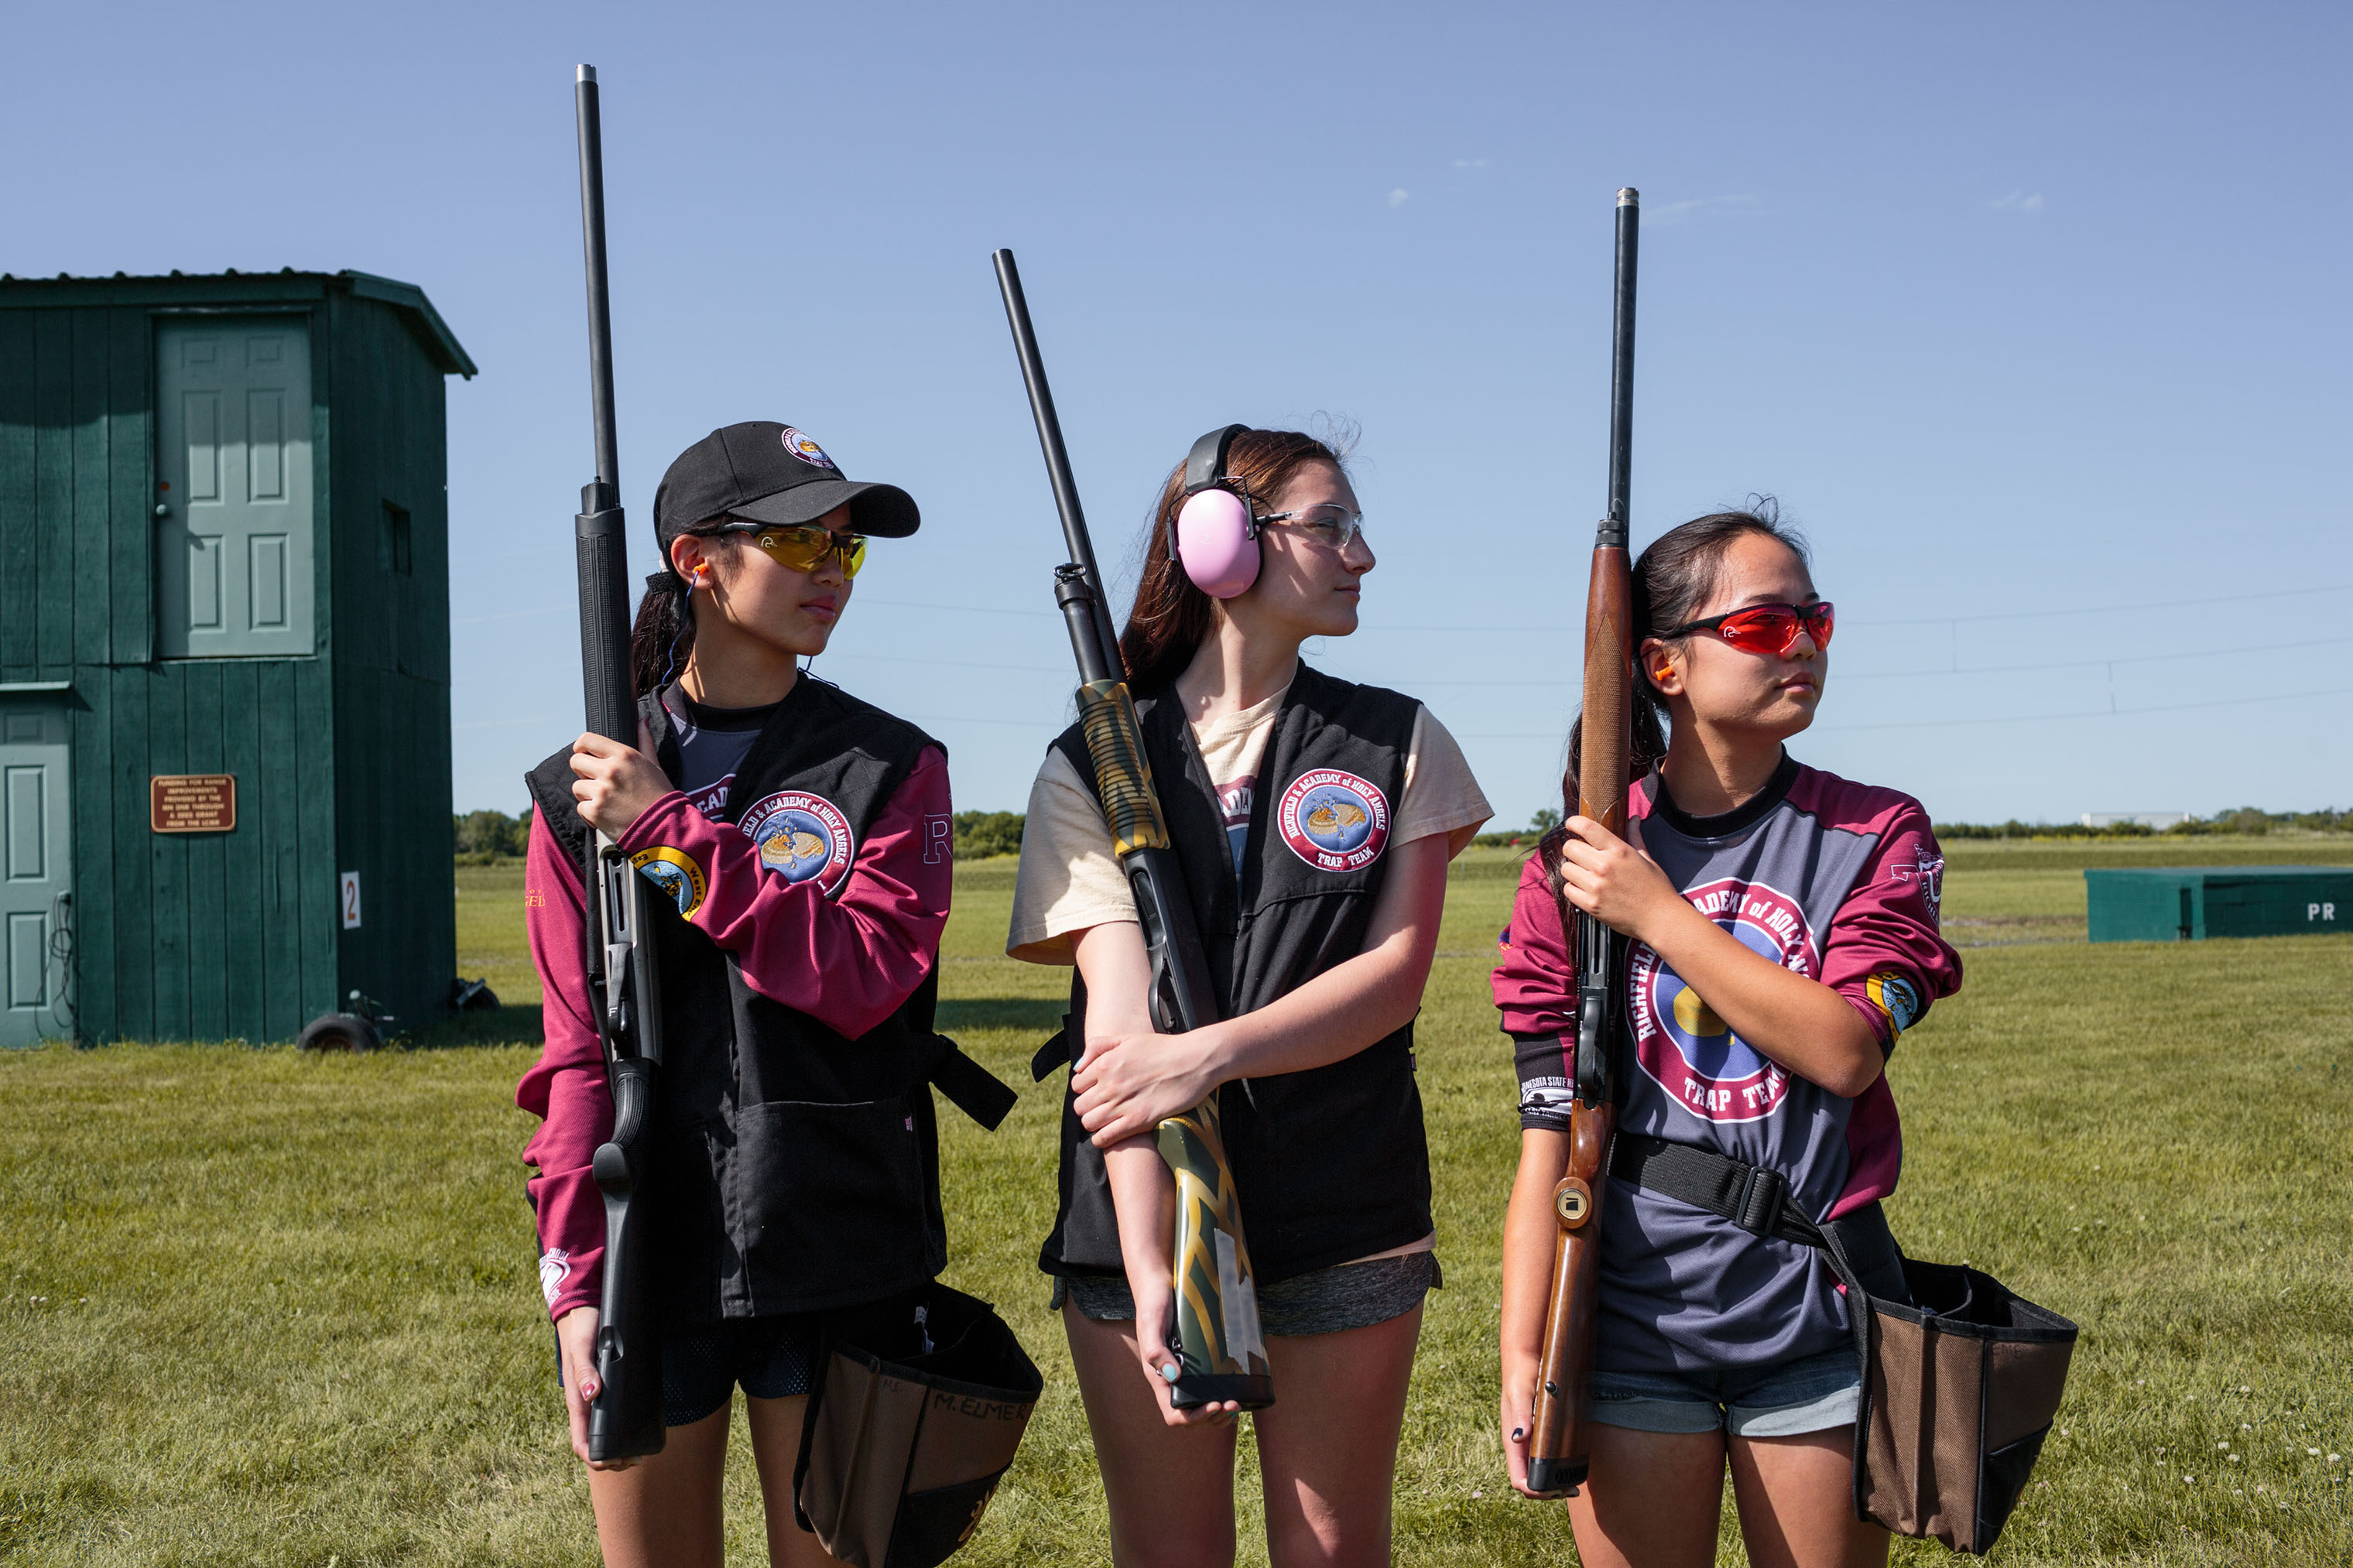 Members of the Richfield and Academy of Holy Angels Trap Team pose for a portrait before competing at the annual trap shooting championship in Alexandria, Minnesota on June 13, 2018.